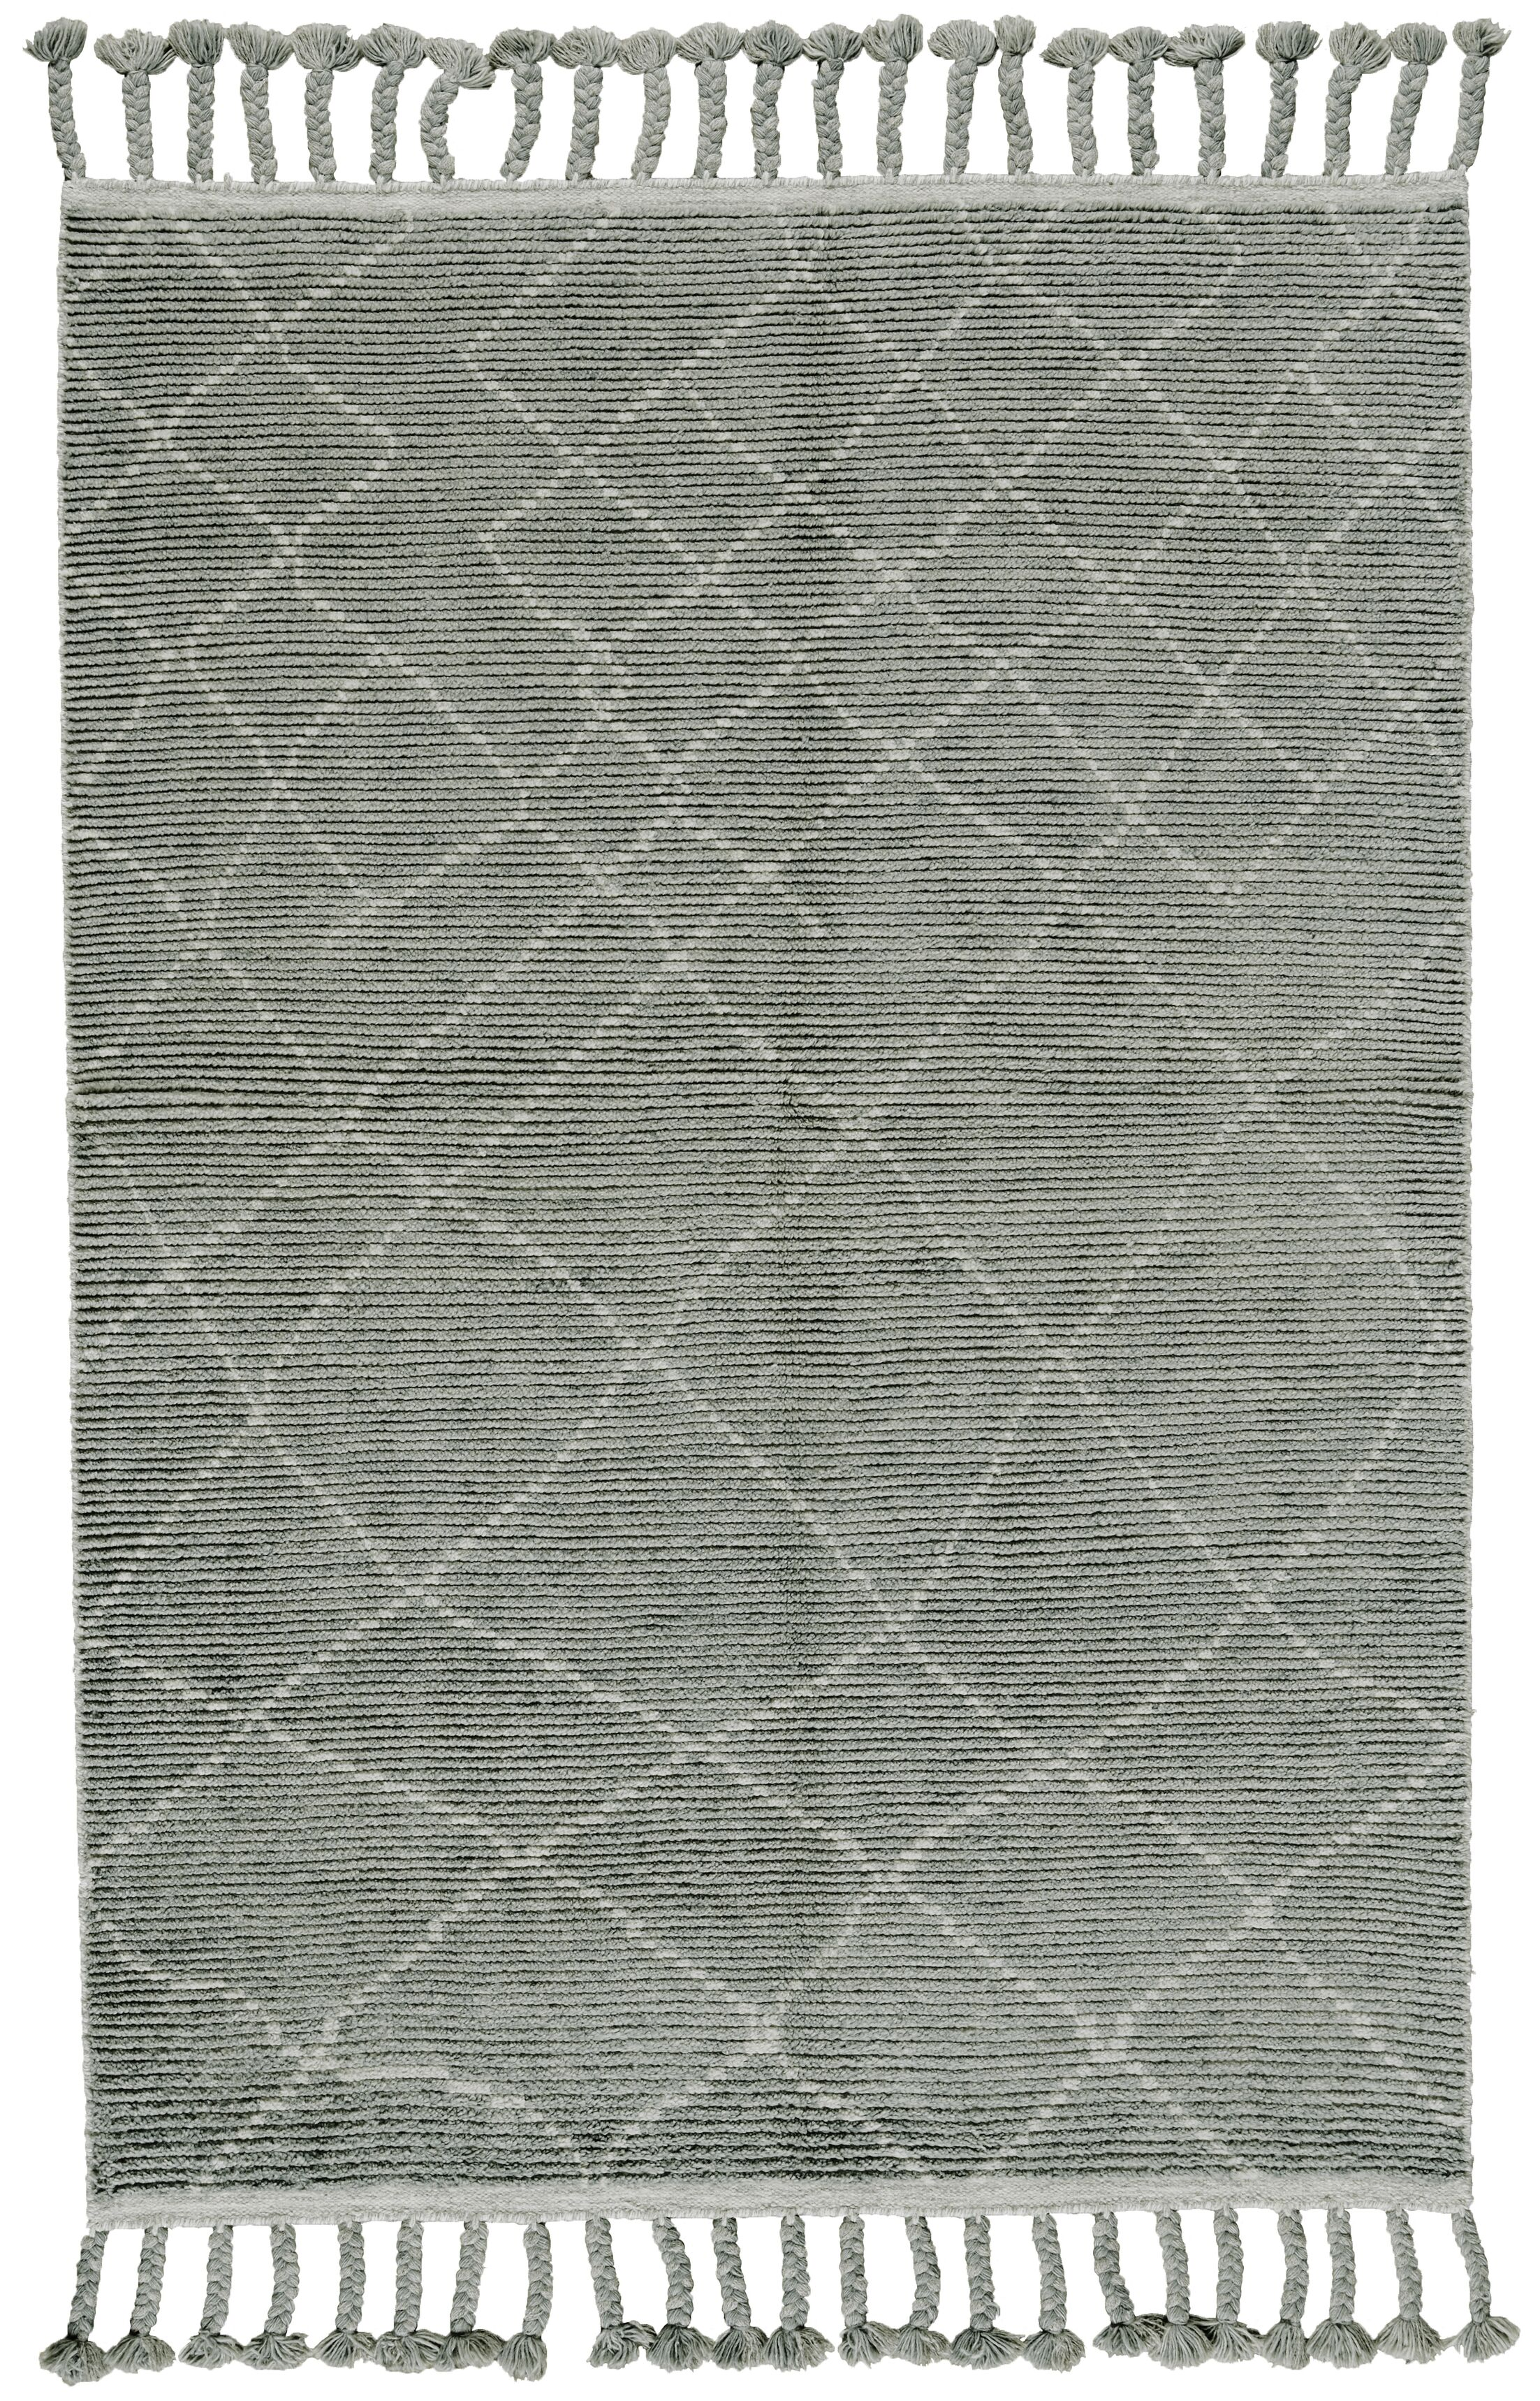 Rego Hand-Knotted Wool Ash Area Rug Rug Size: Rectangle 4' x 6'